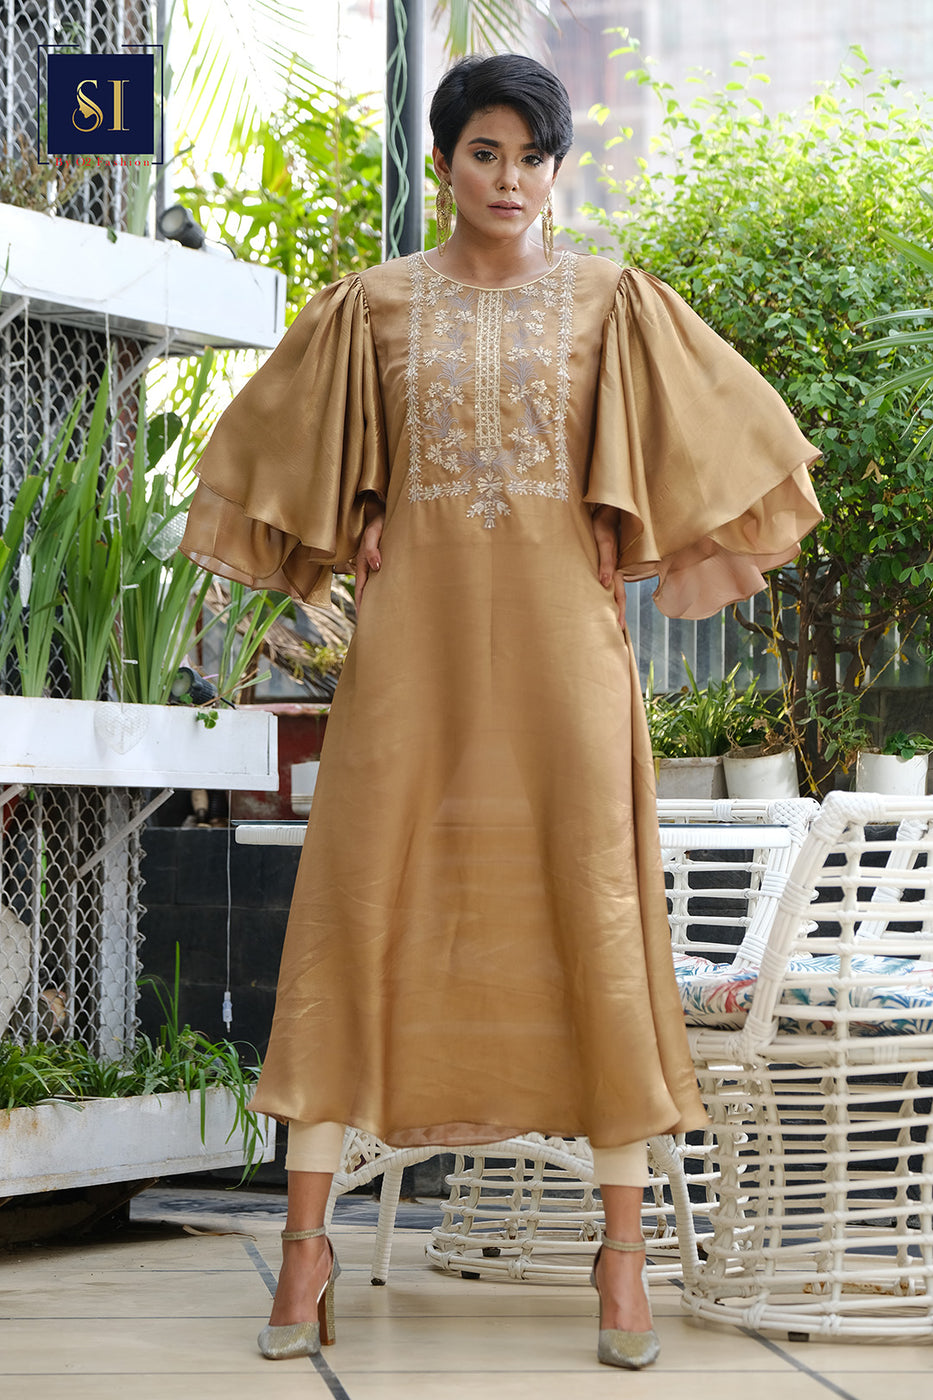 COPER GOLDEN LUXURY GOWN Comes with Pant